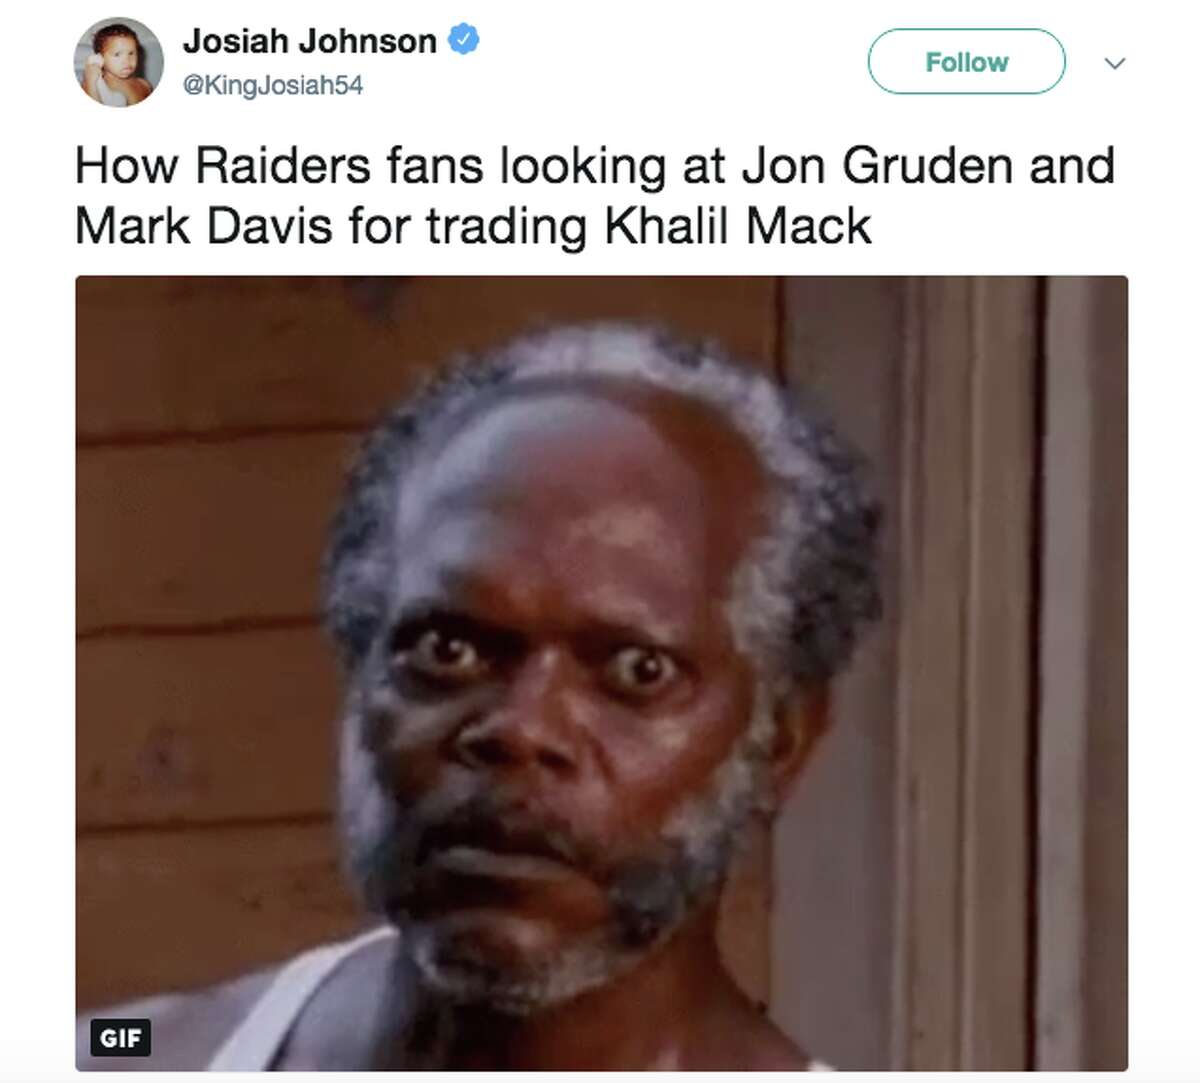 Oakland Raiders fans were not happy after the team traded Khalil Mack to the Chicago Bears.